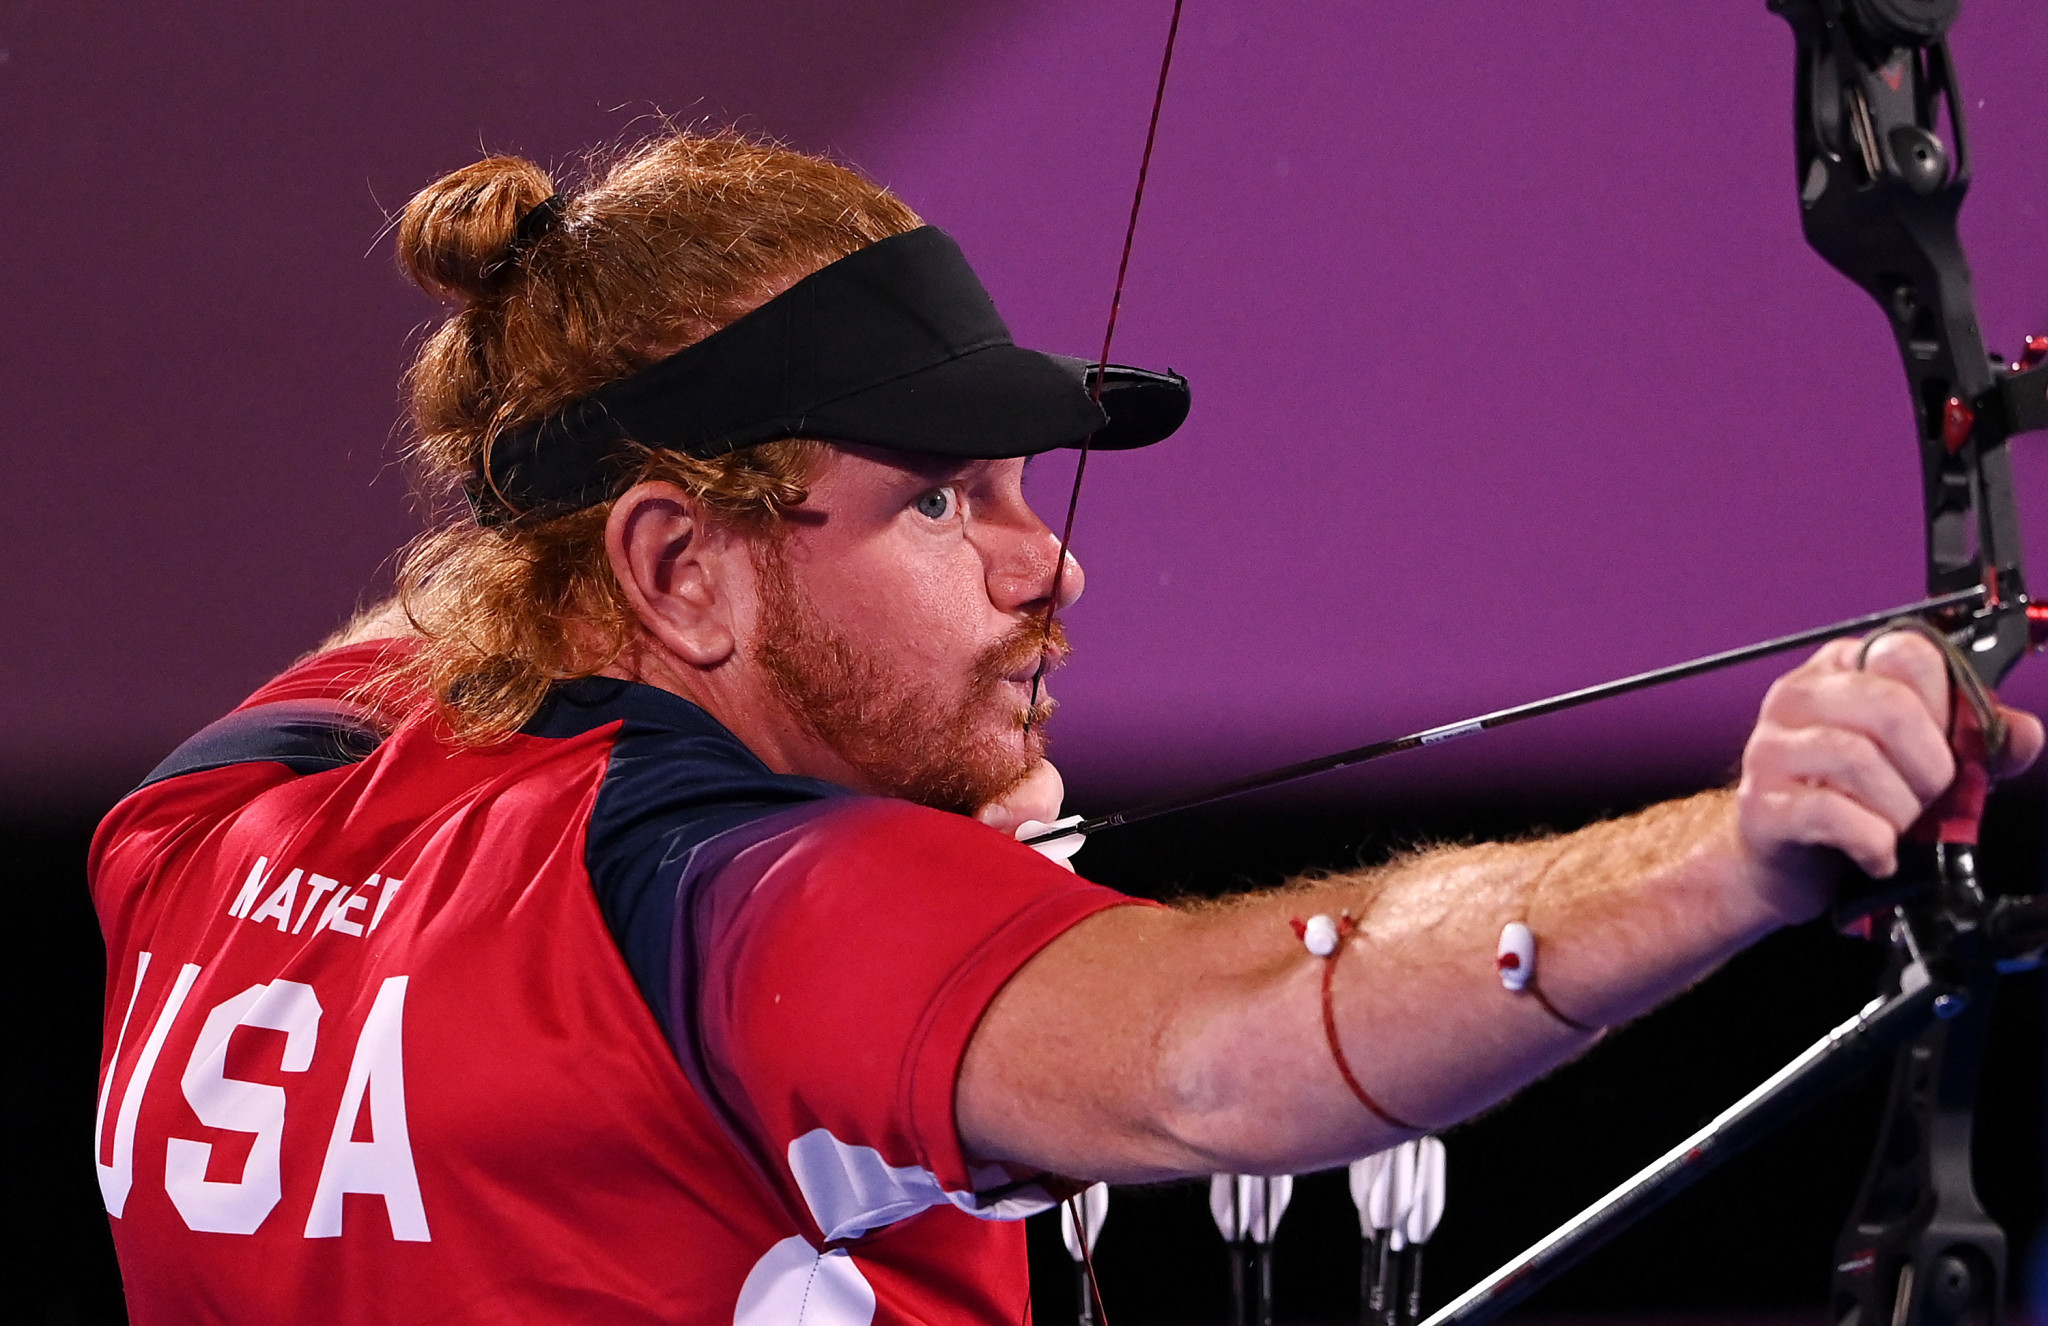 Mather wins individual recurve gold in thrilling archery final